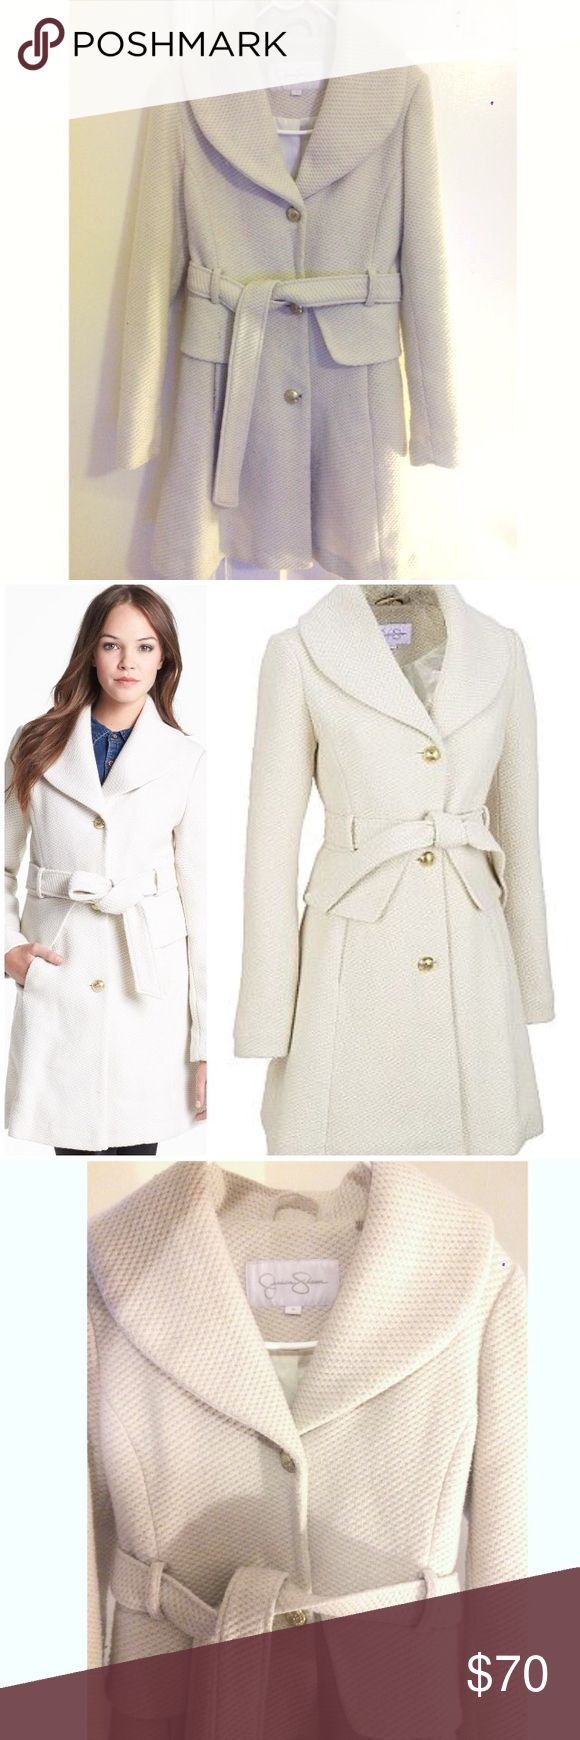 Jessica Simpson Wool blend Ivory Coat! Warm&cozy Jessica Simpson Wool blend Ivory Coat! Warm & cozy. Size M, true to size. Jessica Simpson Jackets & Coats Trench Coats